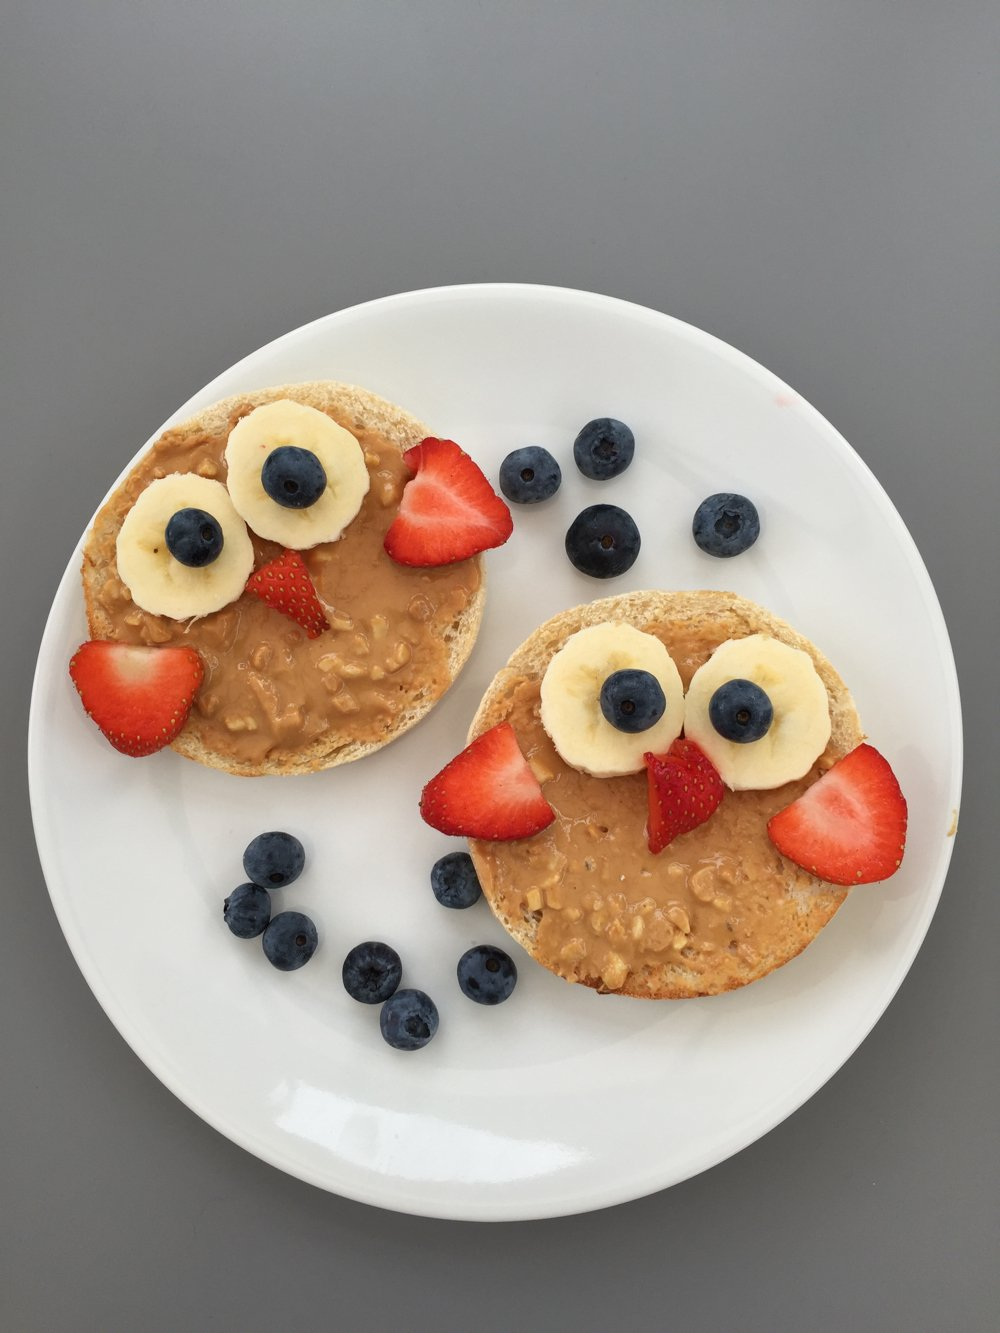 White Plate With Toasted Muffins Topped Sliced Bananas Strawberries And Blueberries To Create An The Cutest Looking Kids Breakfast